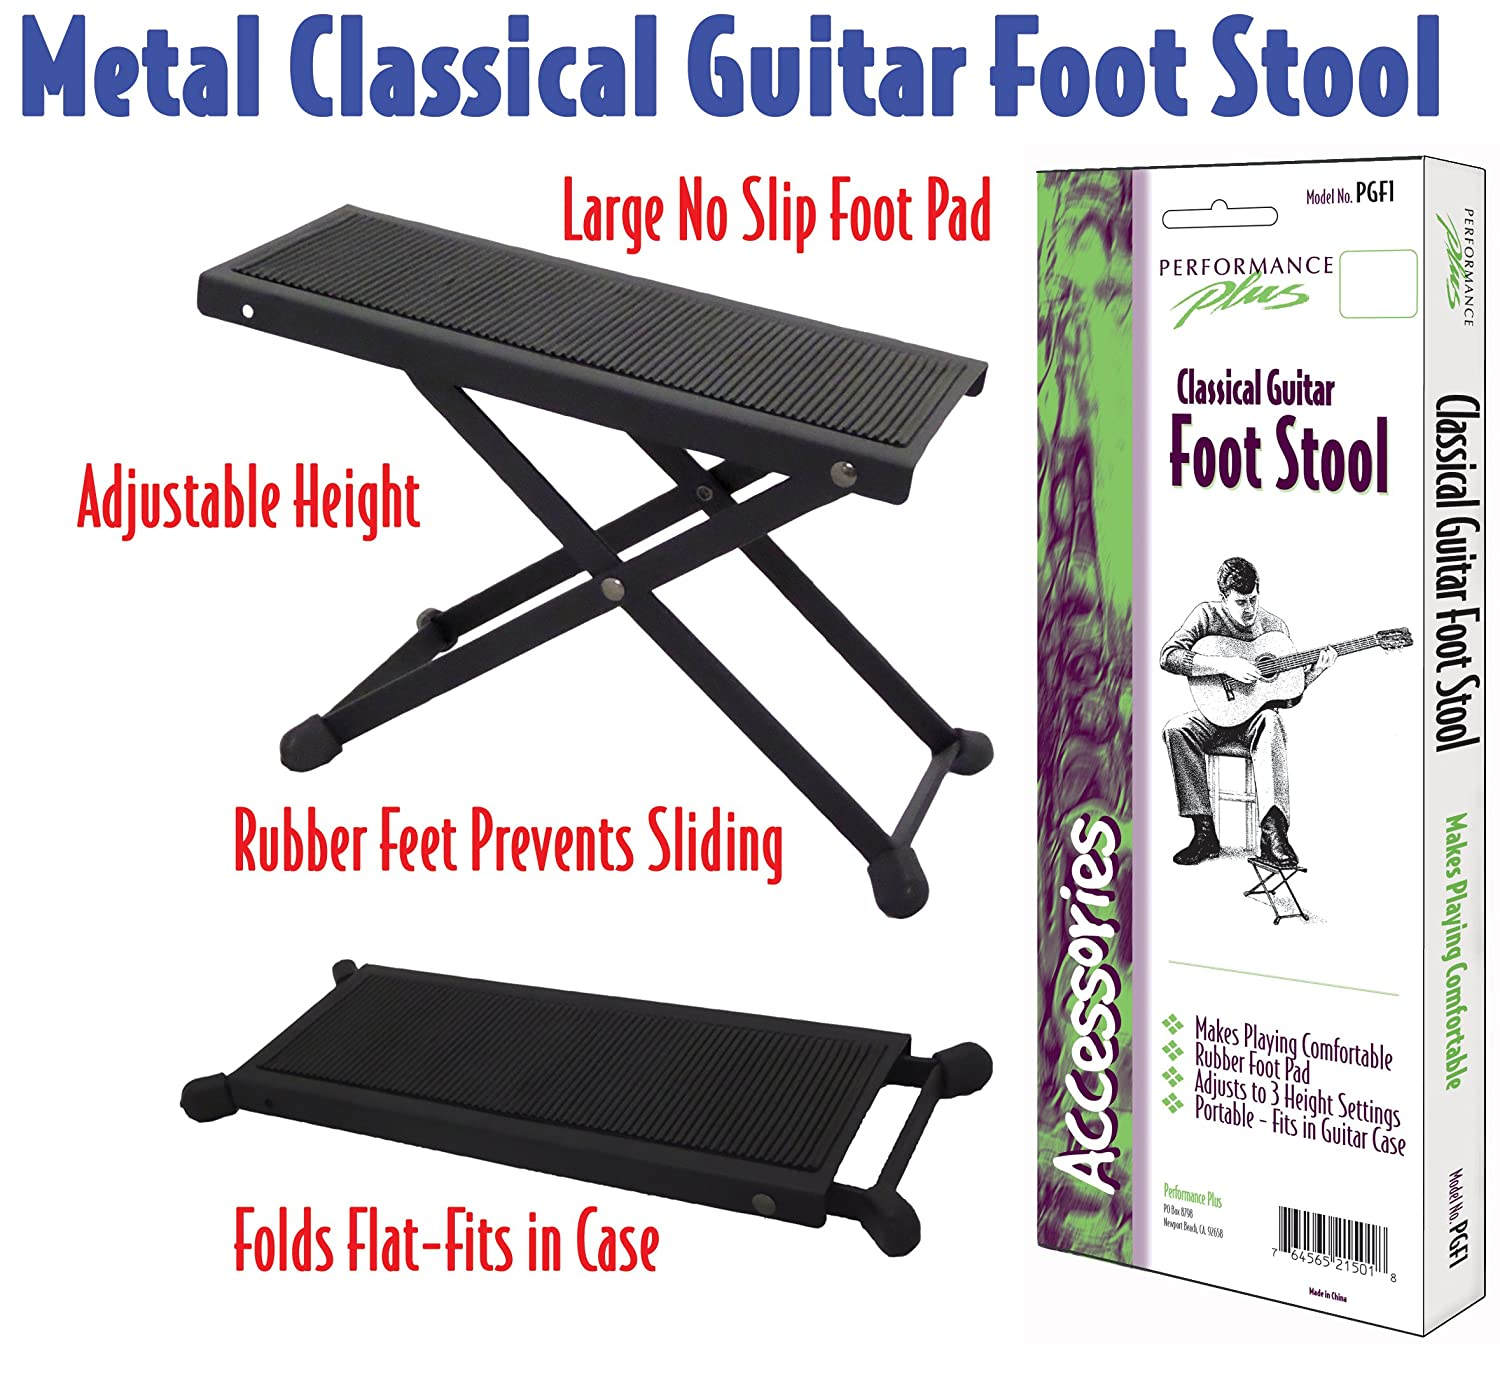 Amazon.com Performance Plus PGF1 Footstool Adjustable Height Black Metal Tour Grade Professional Musical Instruments  sc 1 st  Amazon.com & Amazon.com: Performance Plus PGF1 Footstool Adjustable Height ... islam-shia.org